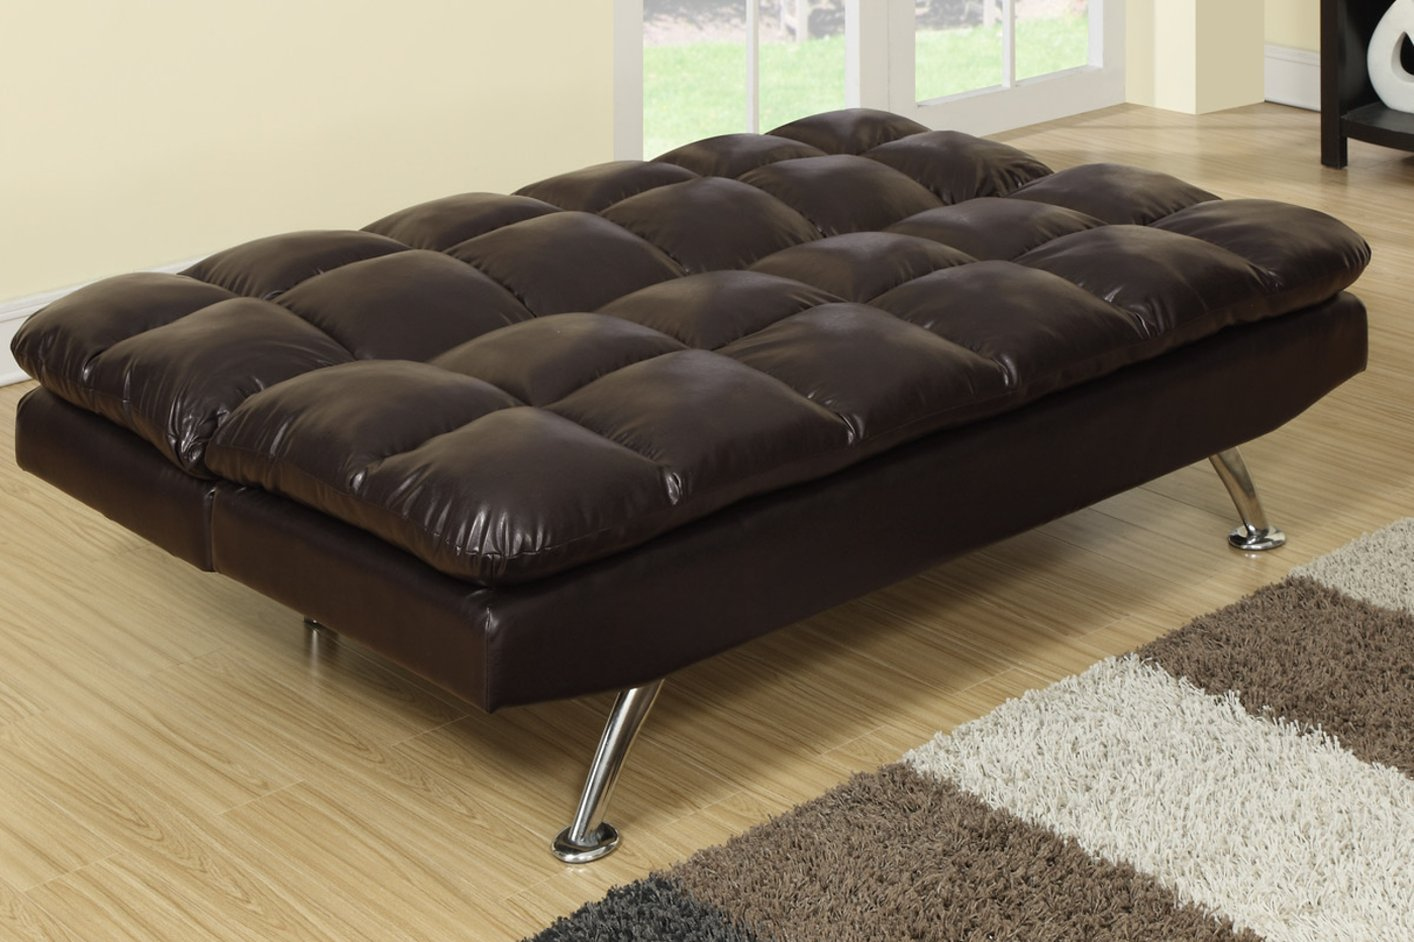 twin bed sofa couch natural latex canada poundex f7011 brown size leather steal a